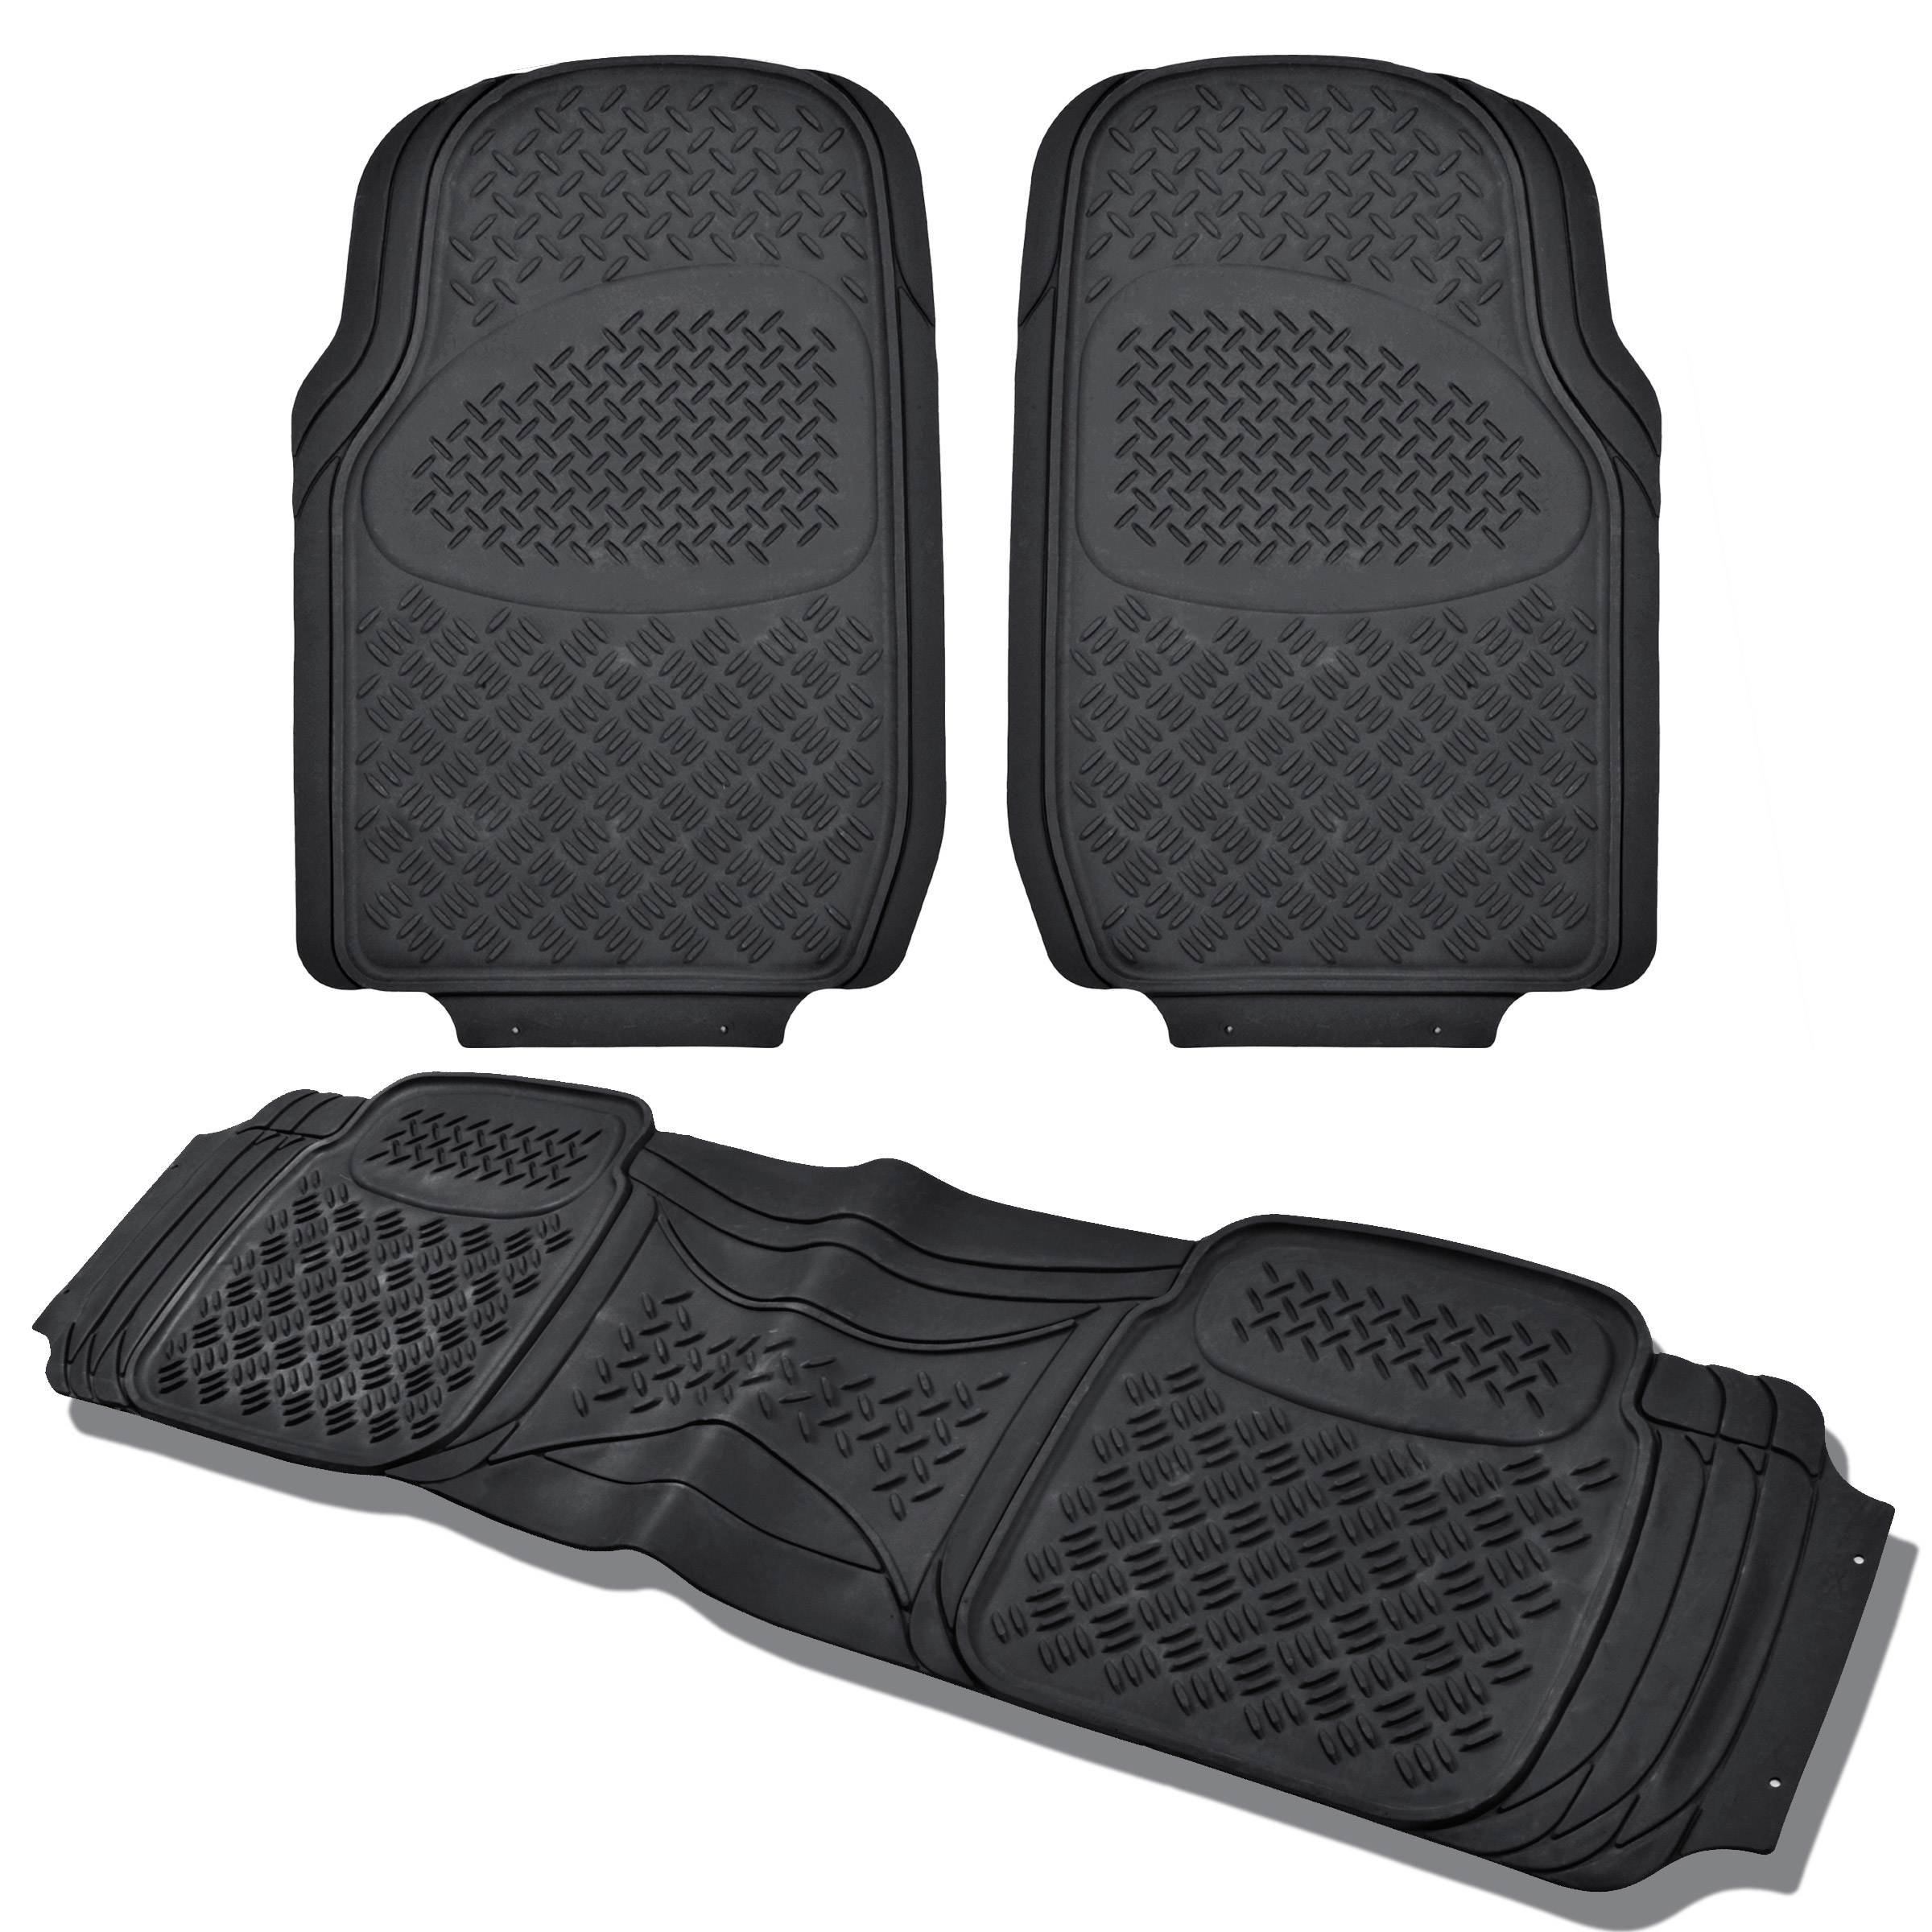 car black shop carpet covers floor bestfh product beige auto suv seat mats for with red